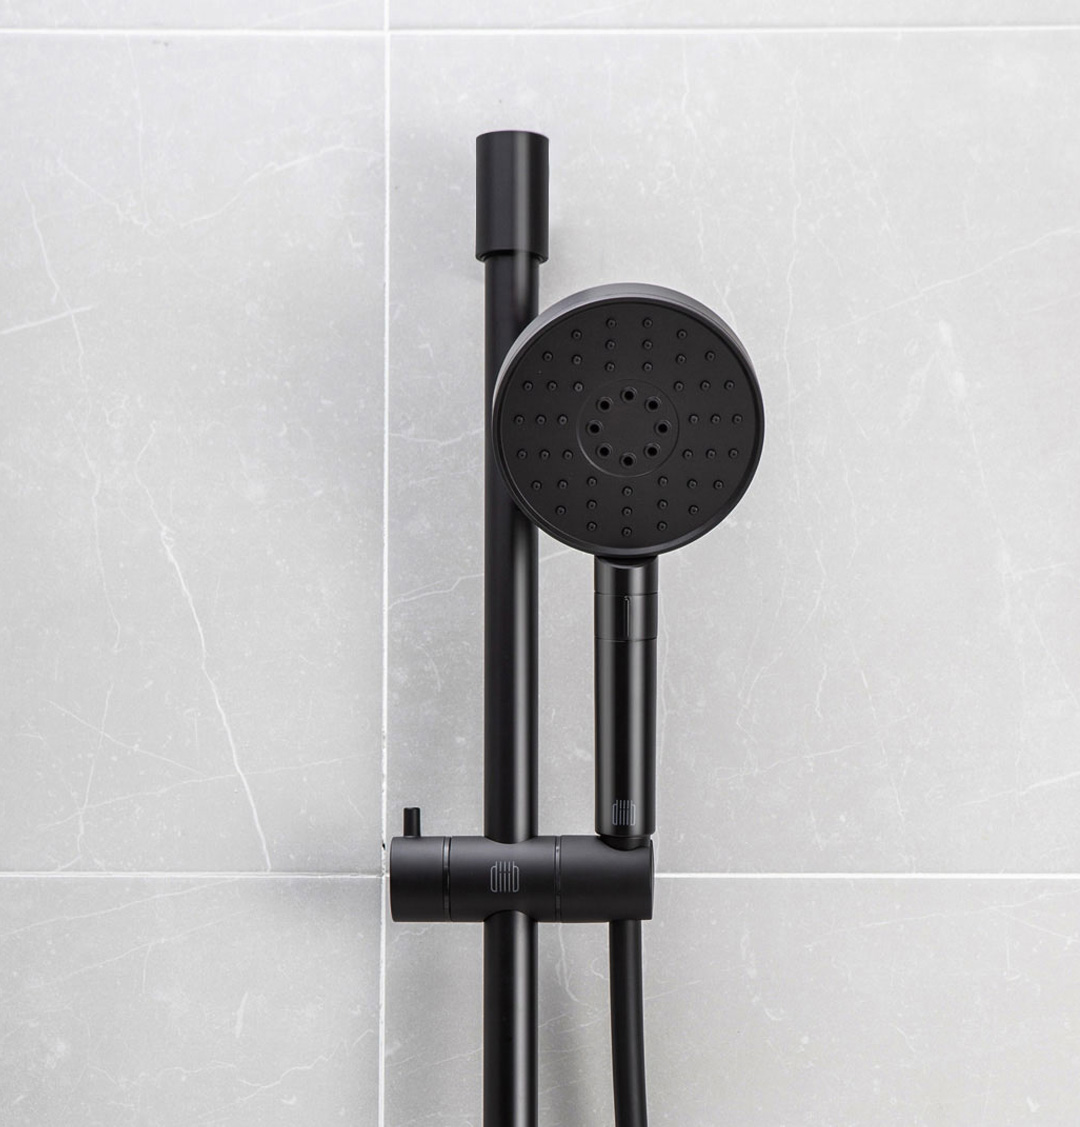 Xiaomi Diiib Shower Set Matt Black